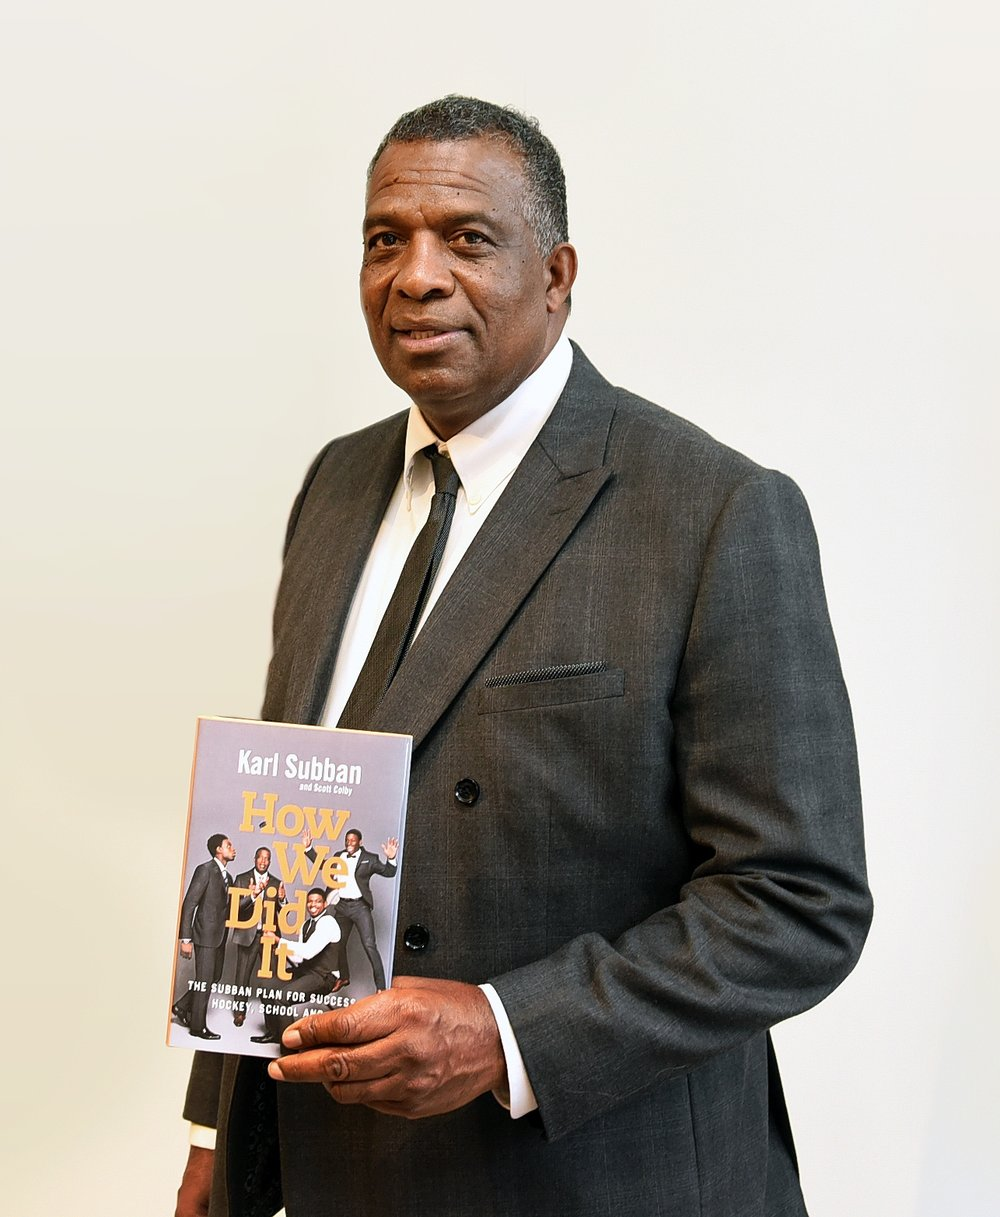 Karl Subban with his new book